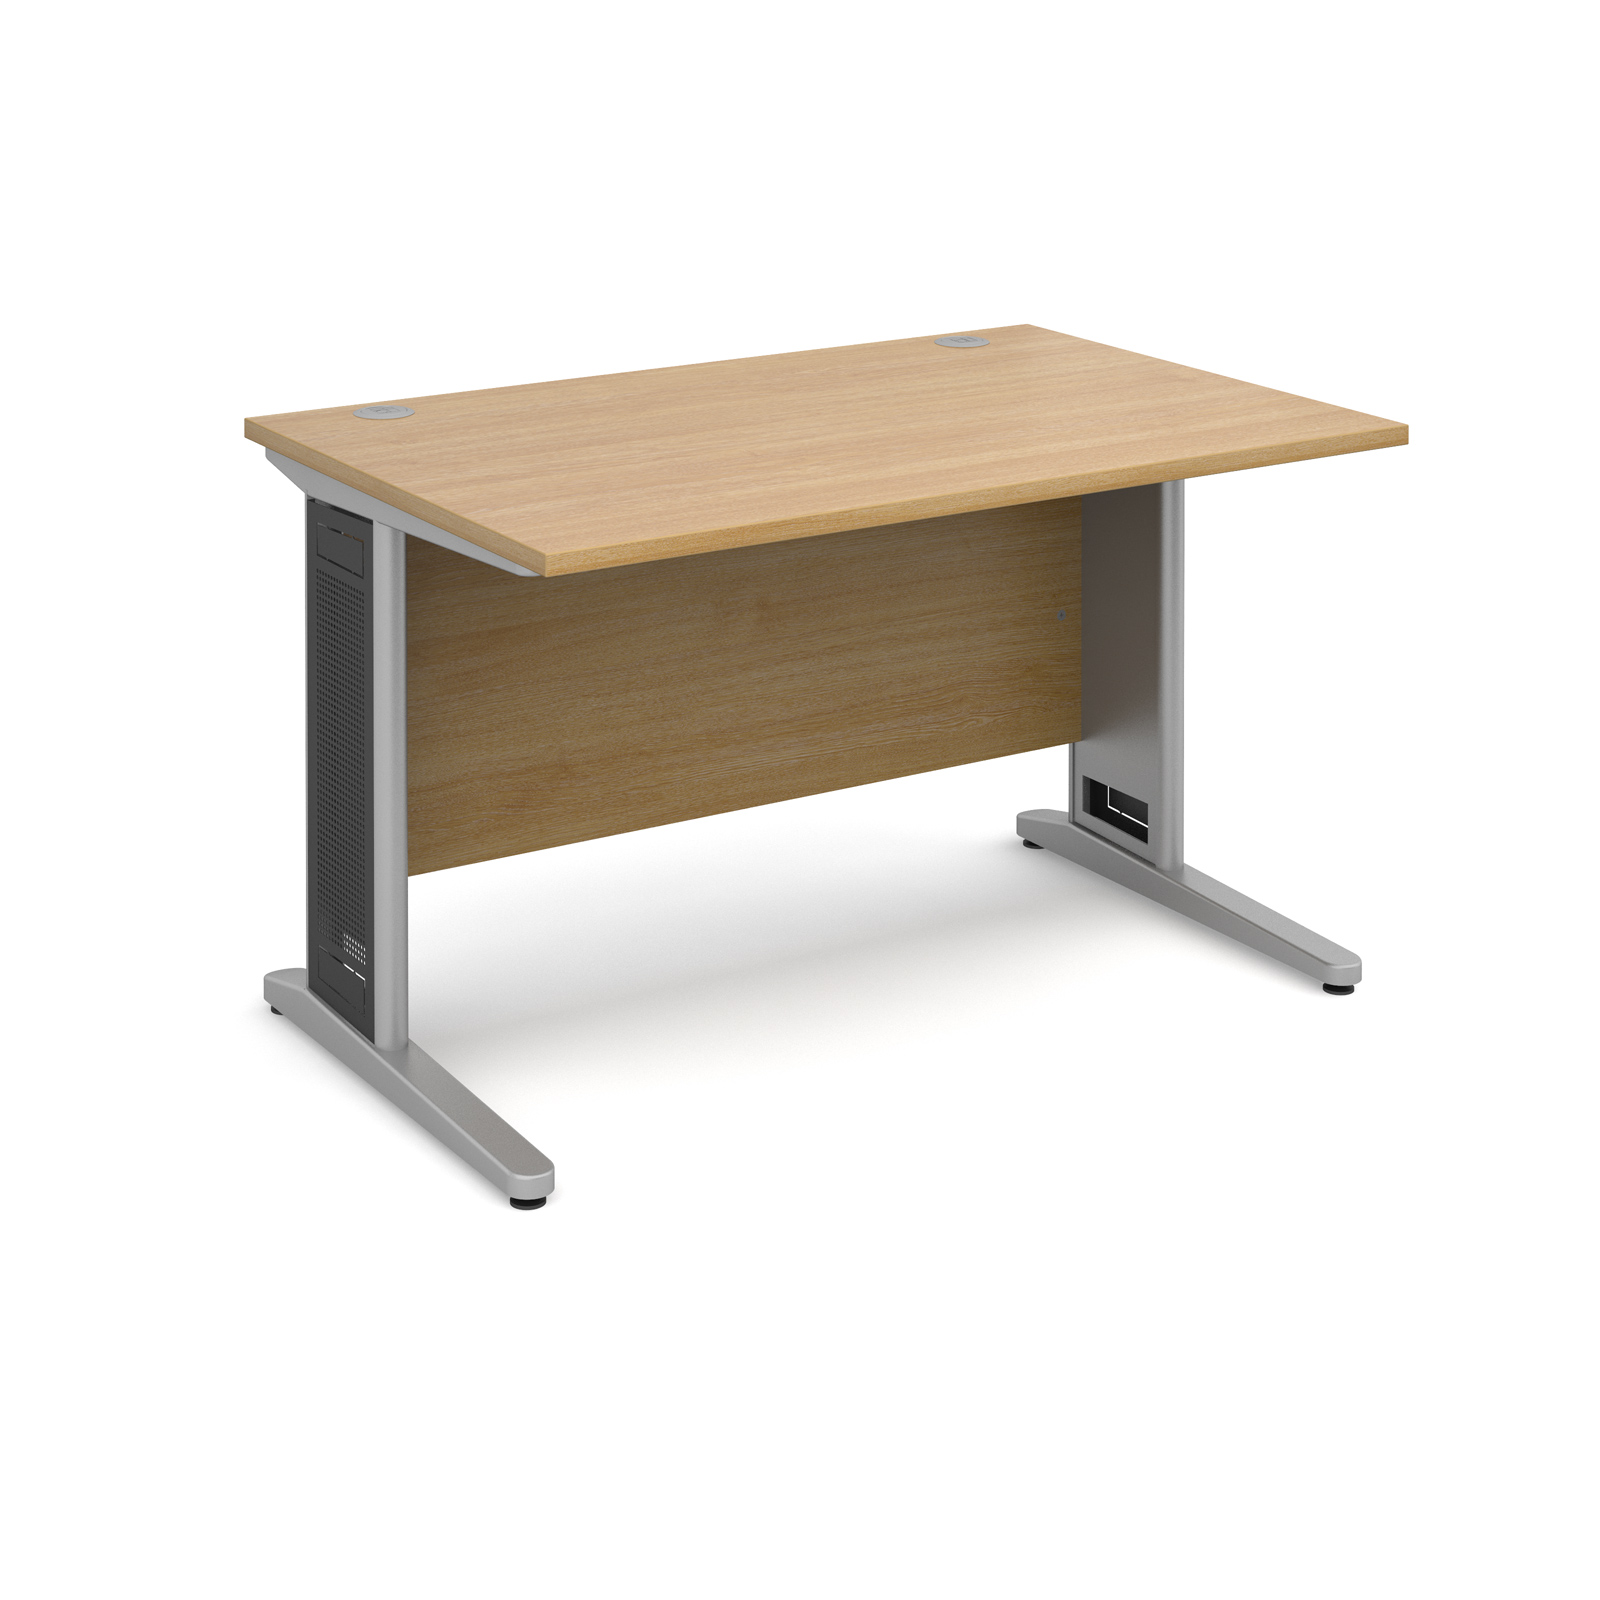 Largo straight desk 1200mm x 800mm - silver cantilever frame with removable grill, oak top